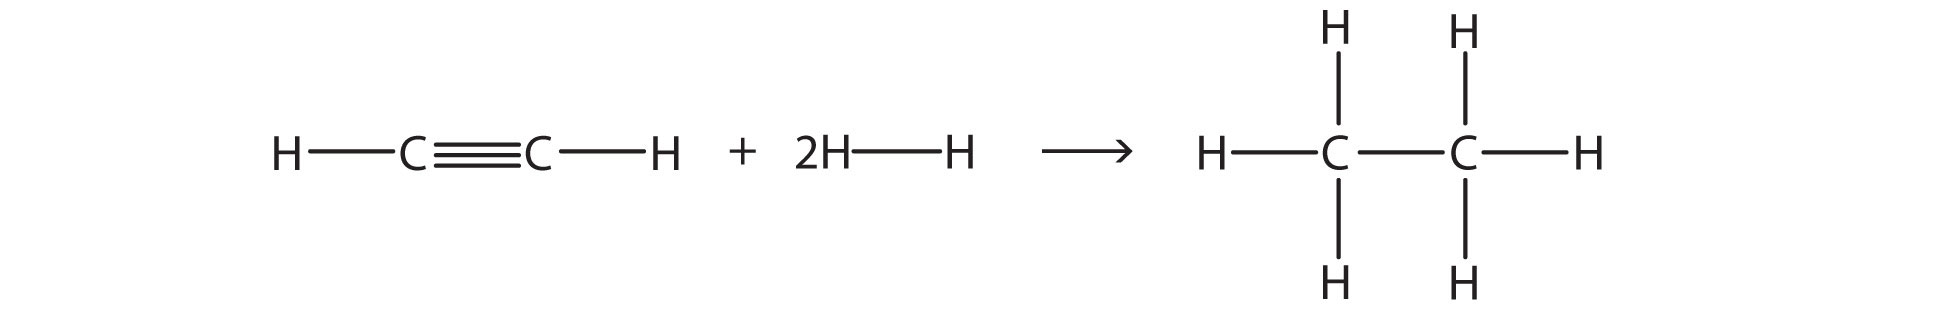 The tripe bond between two Carbon atoms in the Etheyne molecule is broken. The addition of two Hydrogen molecules produces the formation of the corresponding alkane Ethane. Bond breaking is endothermic (requires energy) and bond formation is exothermic. See below overall enthalpy change.